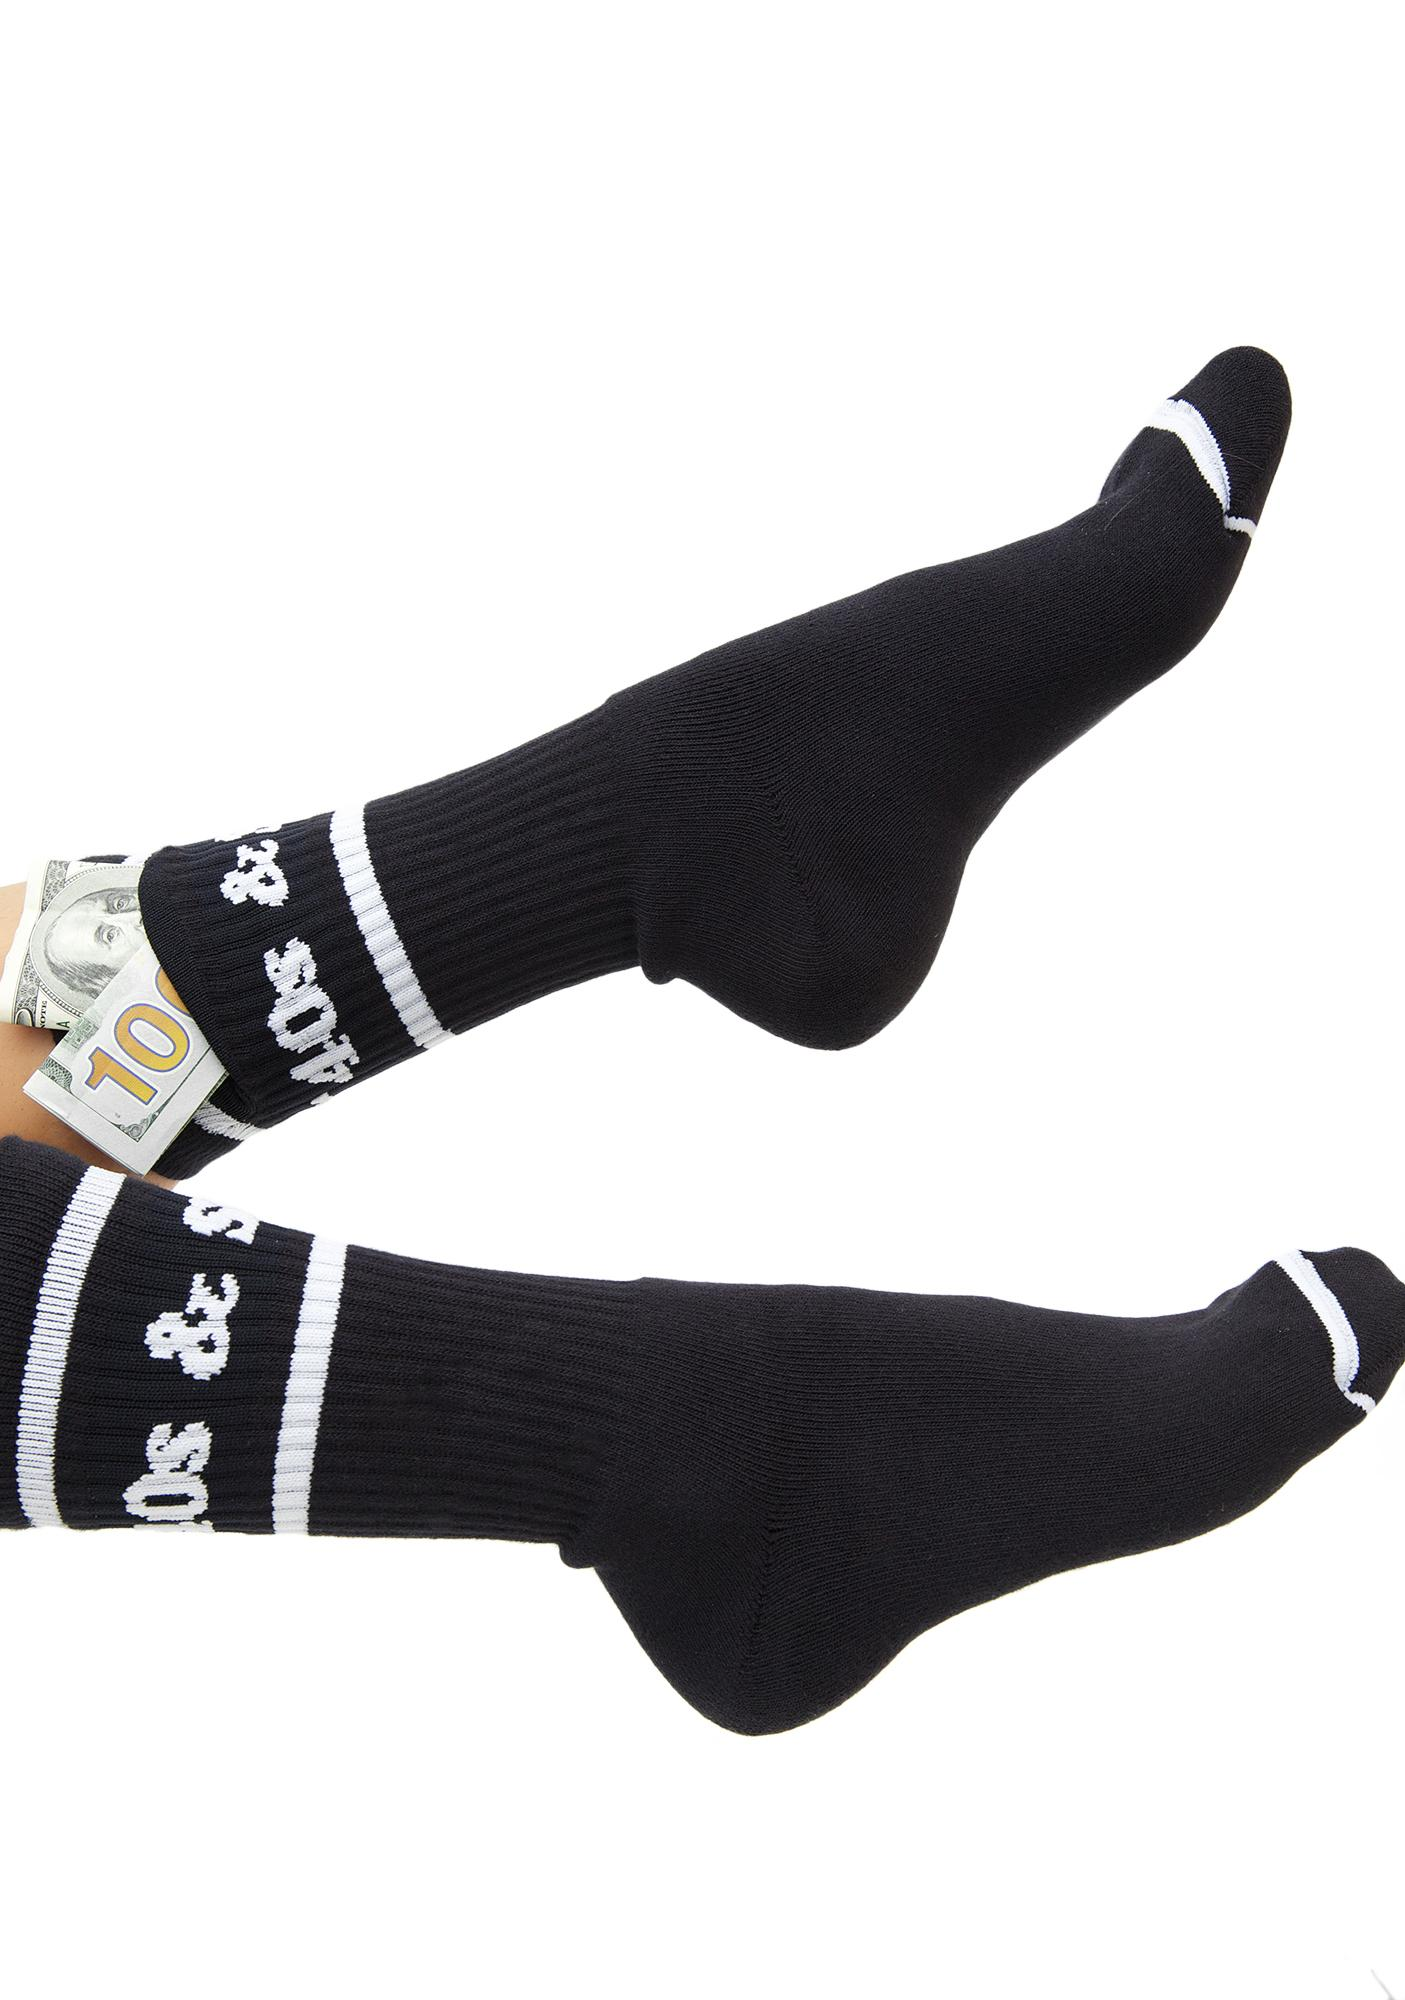 40s & Shorties Text Logo Pocket Socks